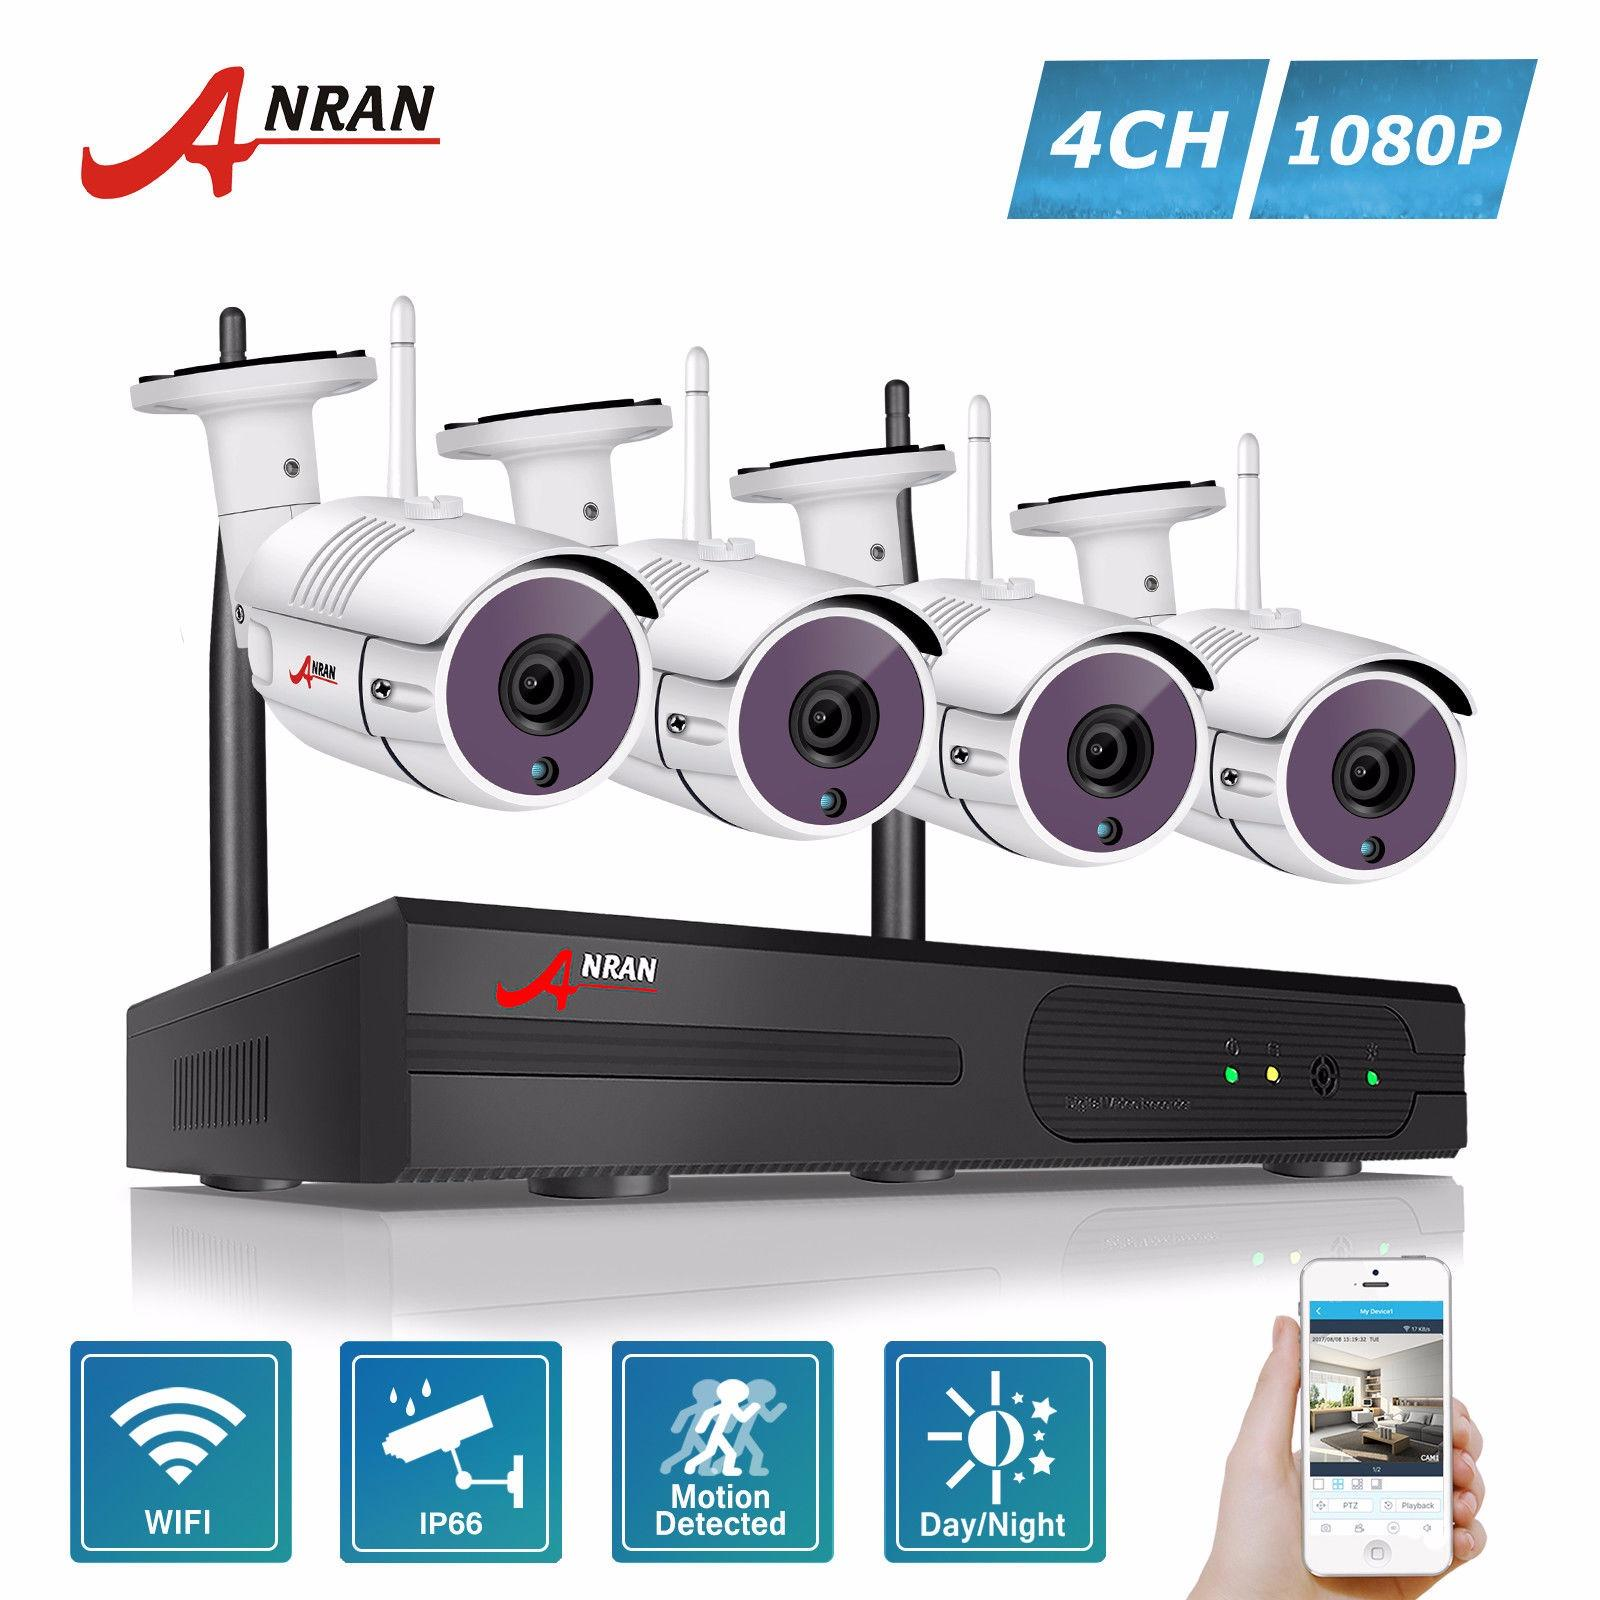 Jual Anran 4Ch Wireless Nvr Security Cctv System P2P 1080P Hd Outdoor Vandalproof Wfi Ip Camera Anran